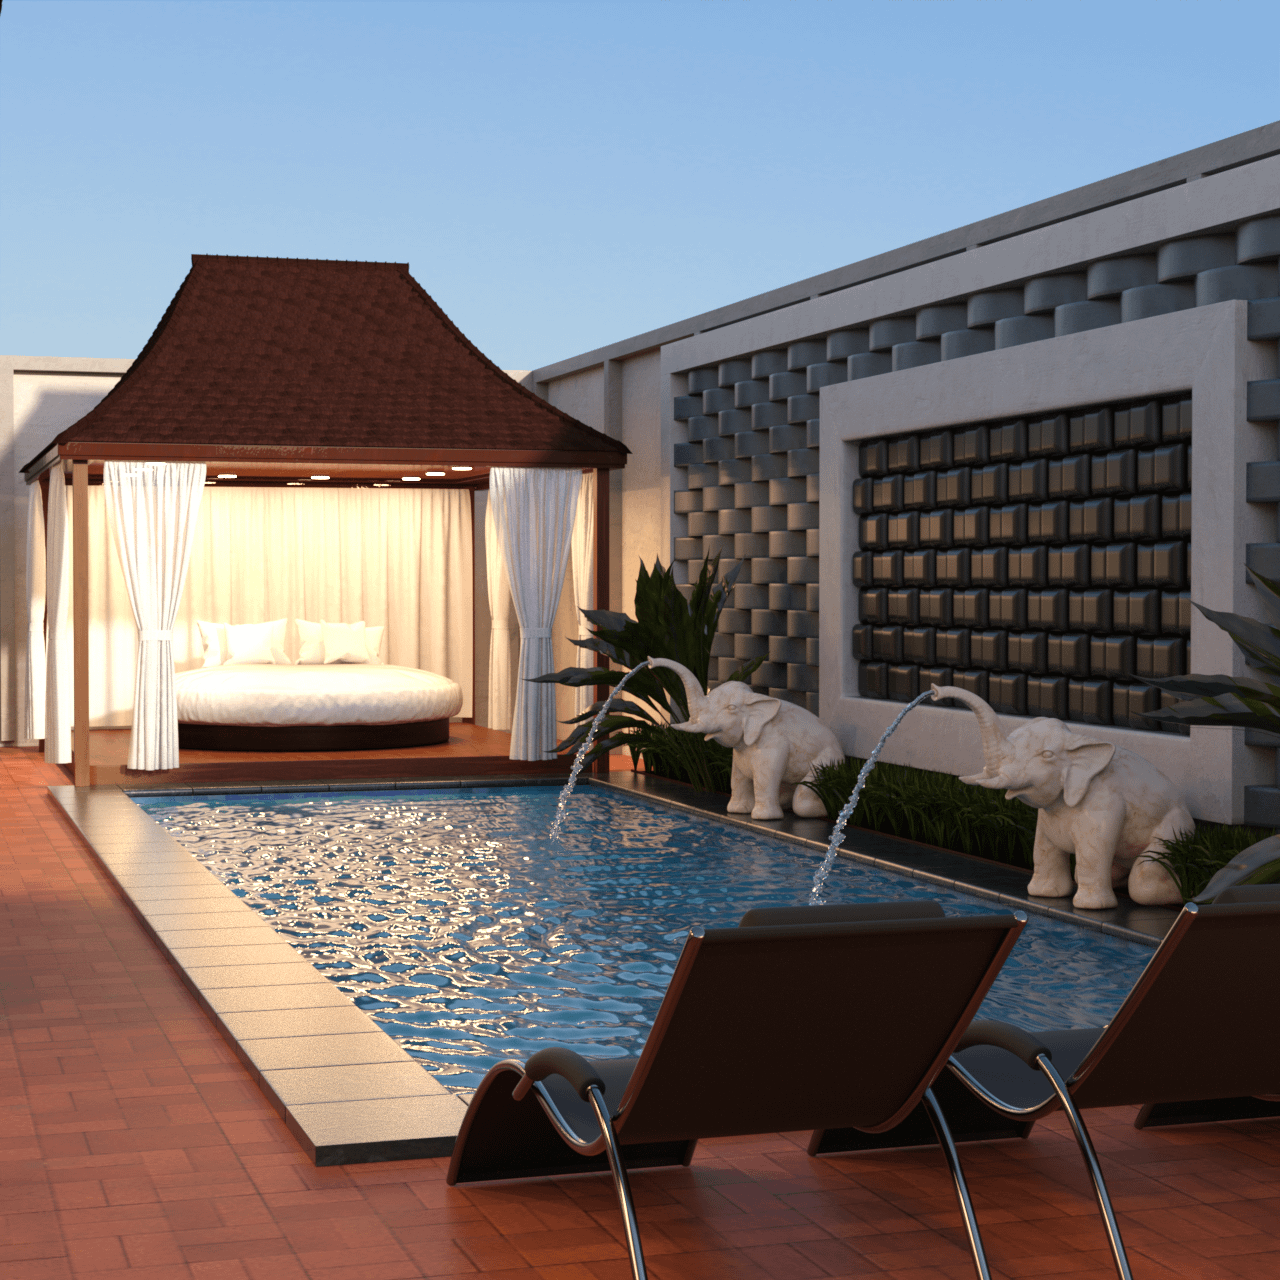 One of the top swimming pool 3d models, a villa with pool and beautiful 3d props as decoration